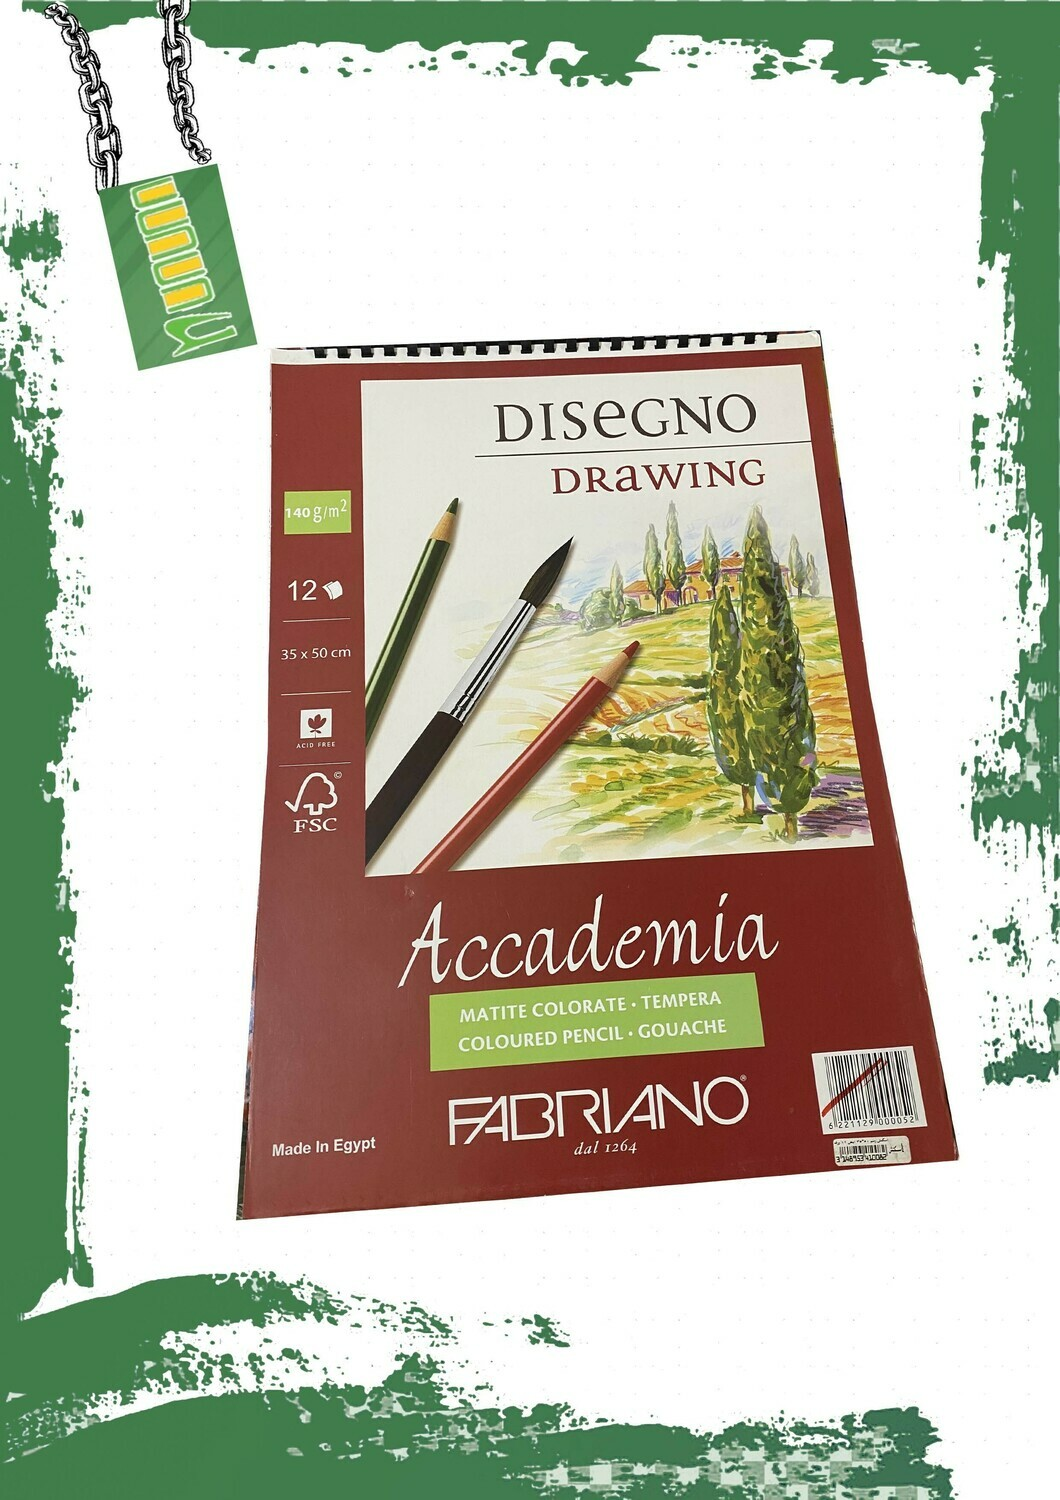 Fabriano Drawing Paper 140Gm 25*35Cm White - دفتر رسم فبريانو 140 جم